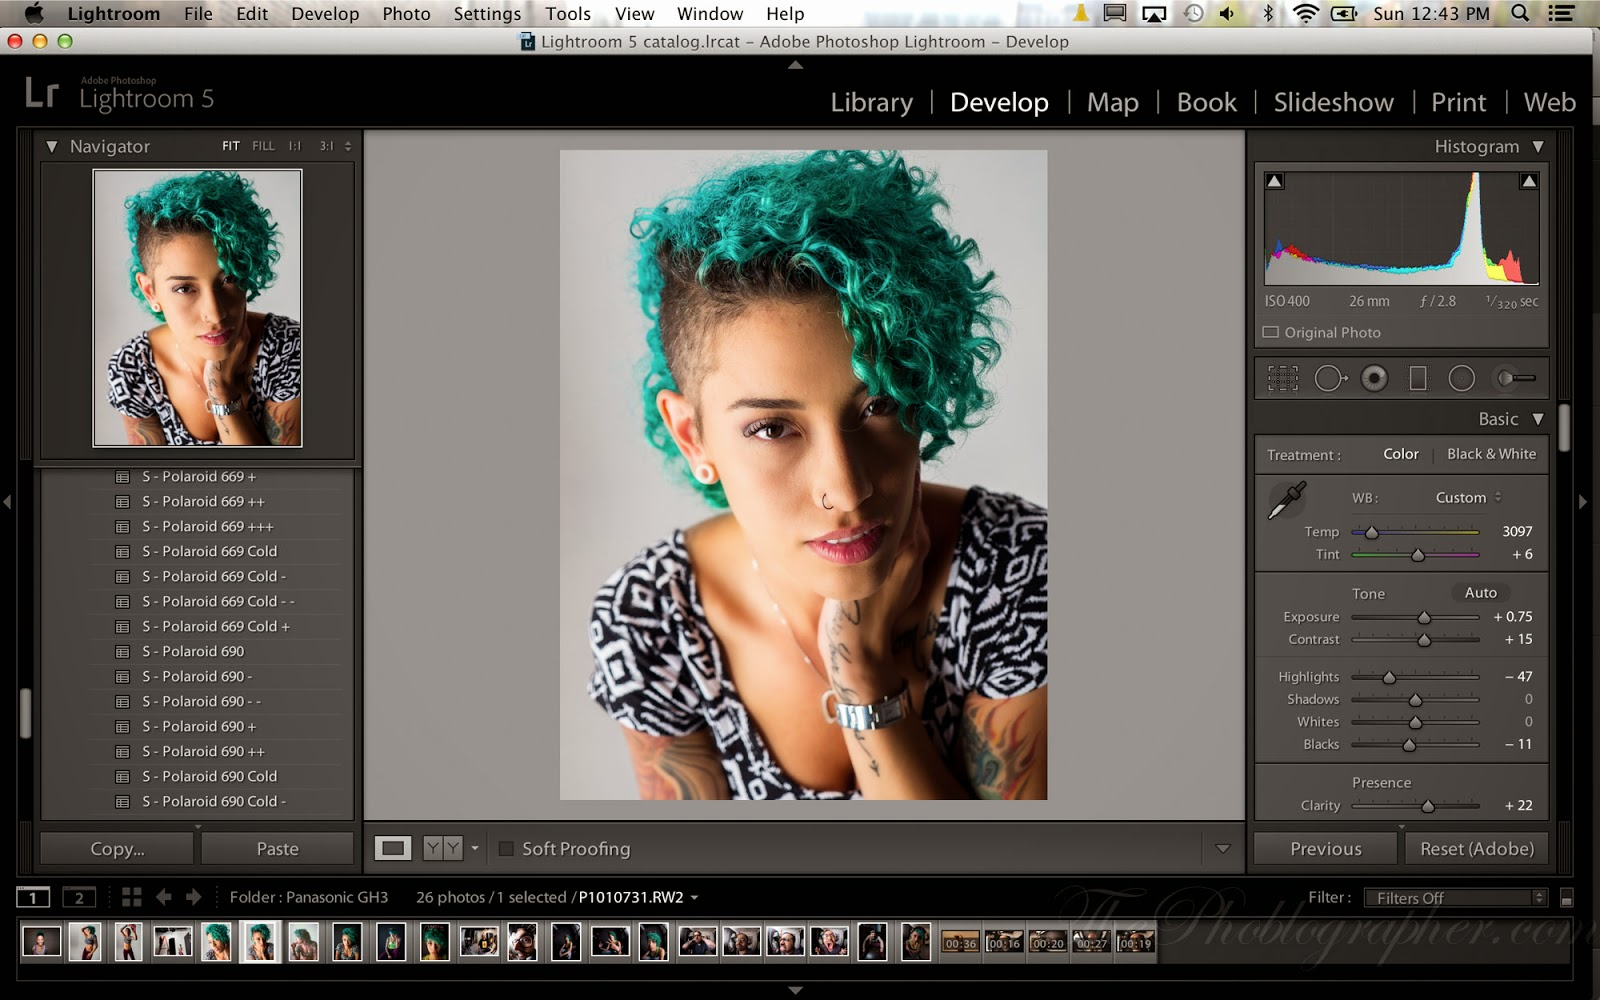 Download Adobe Photoshop Lightroom 5.6 Full Serial Number 2015